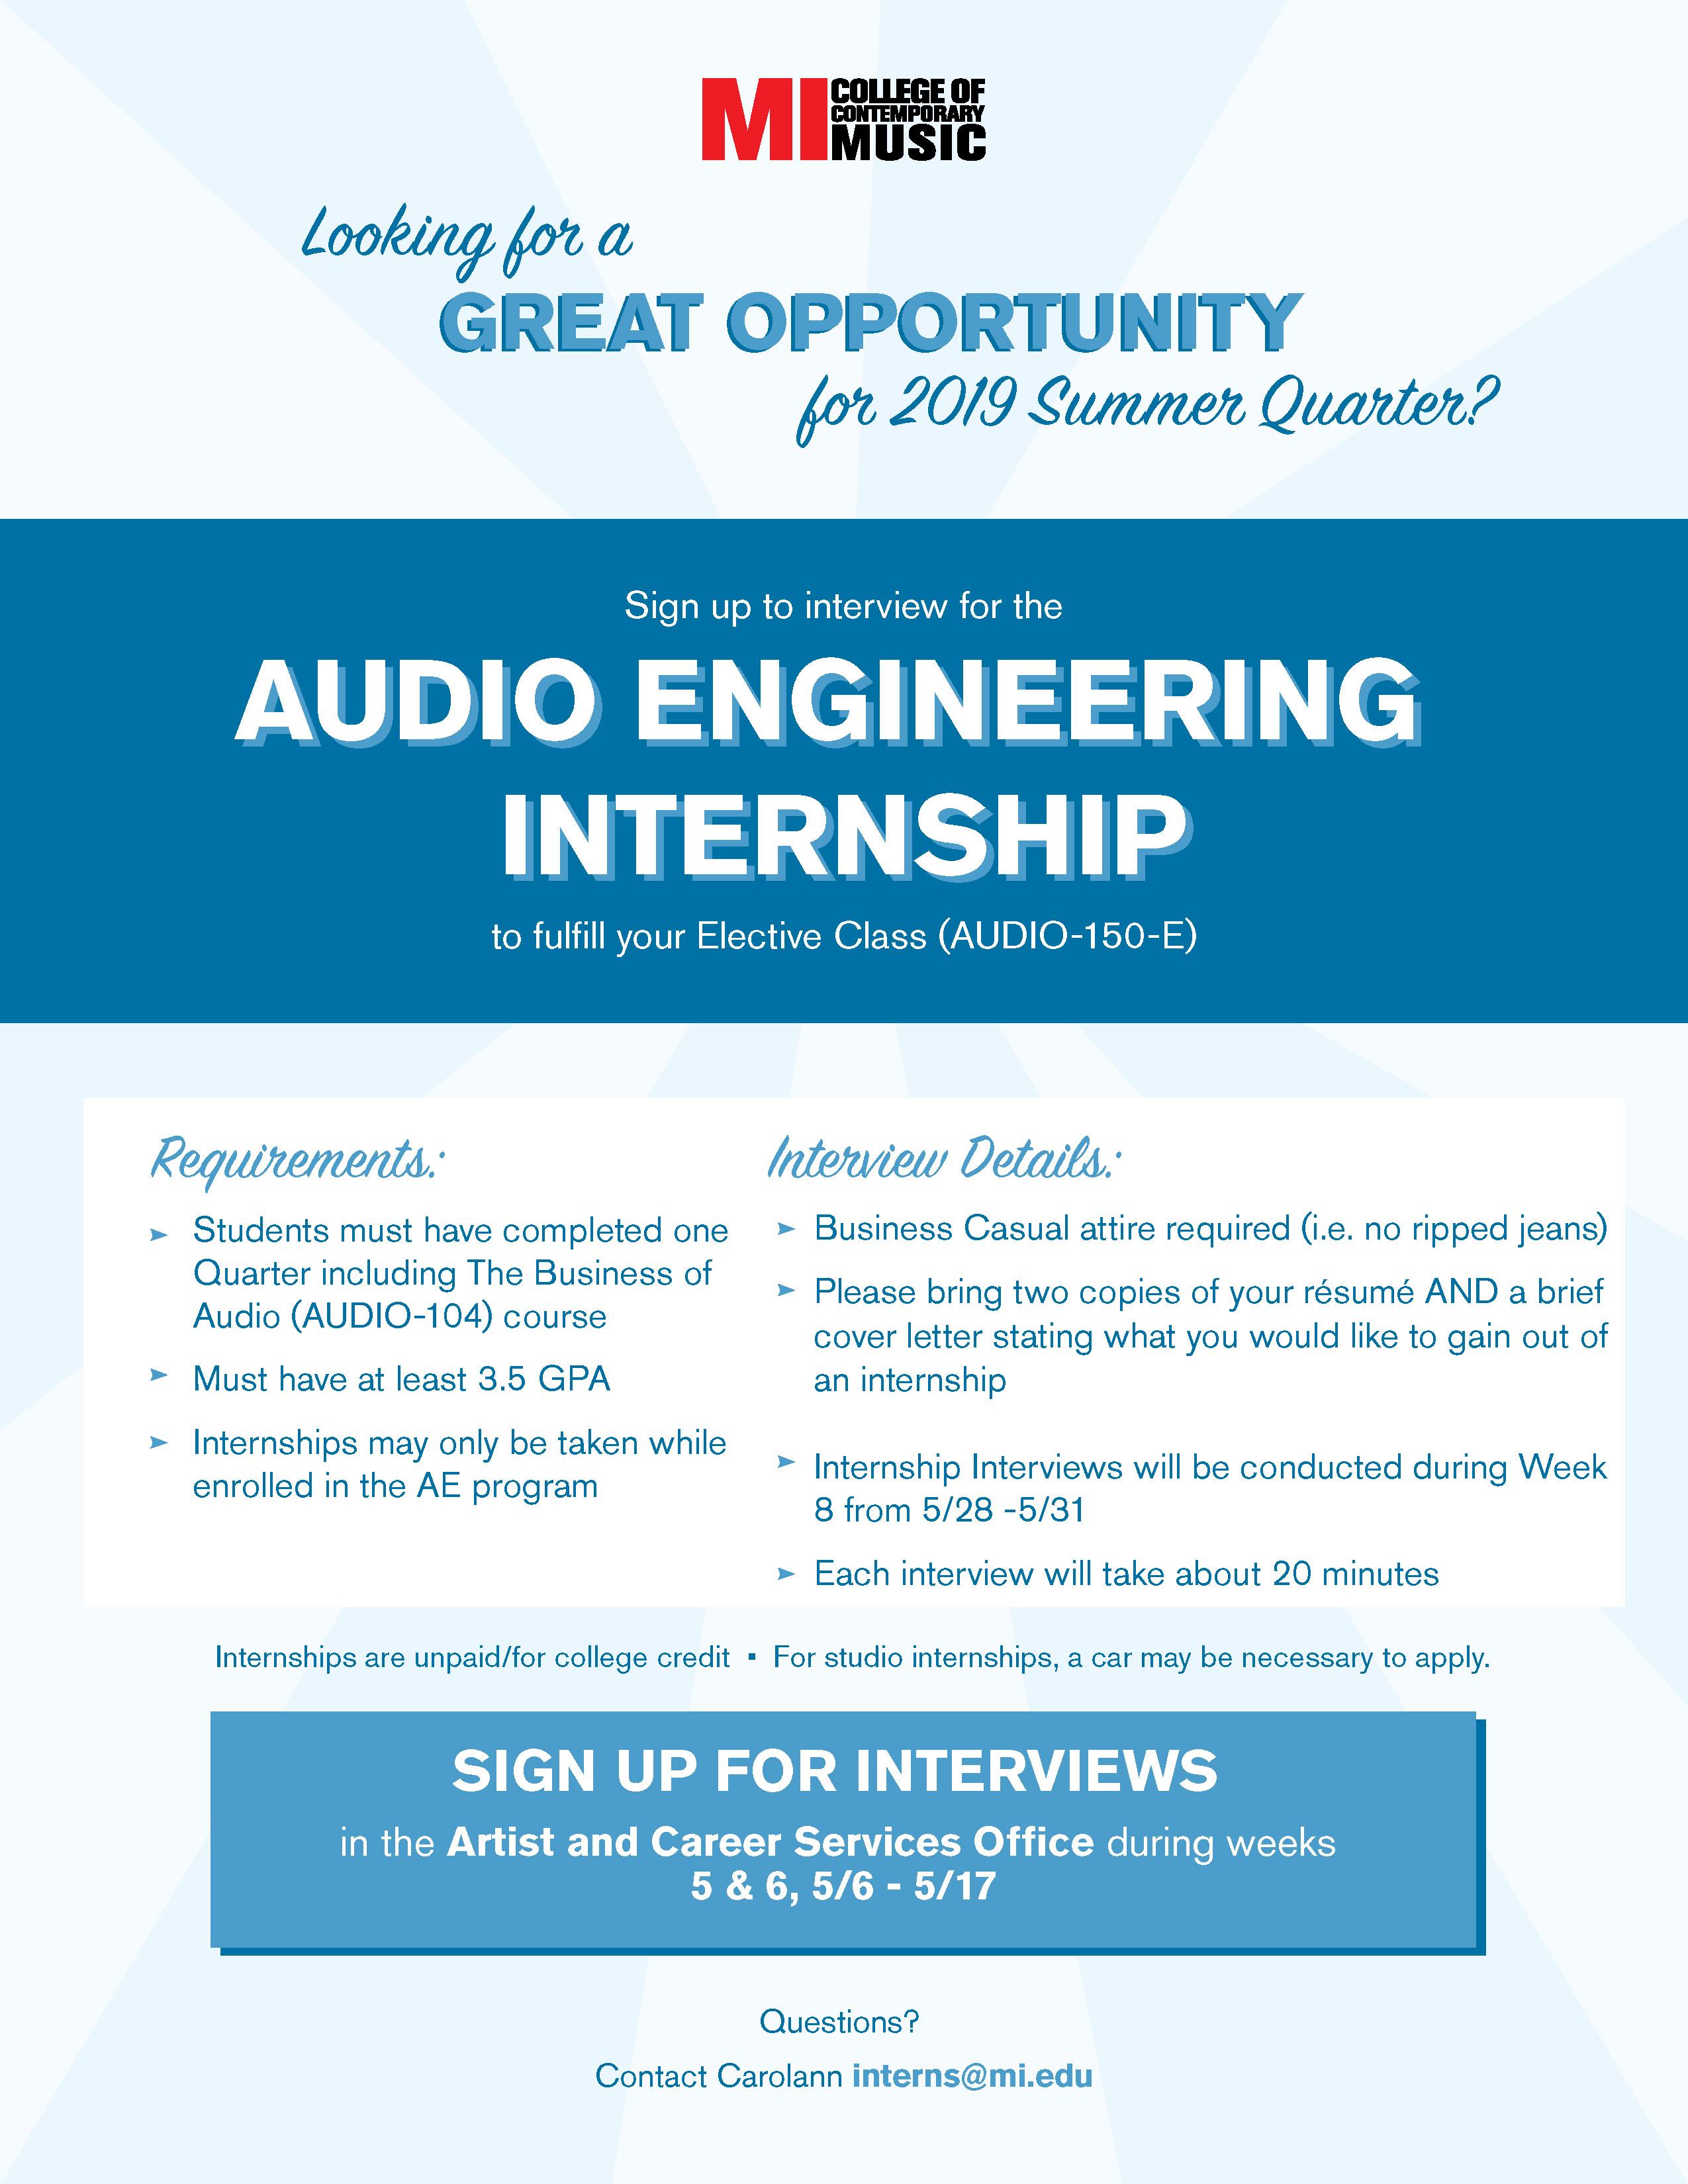 AUDIO ENGINEERING INTERSHIP